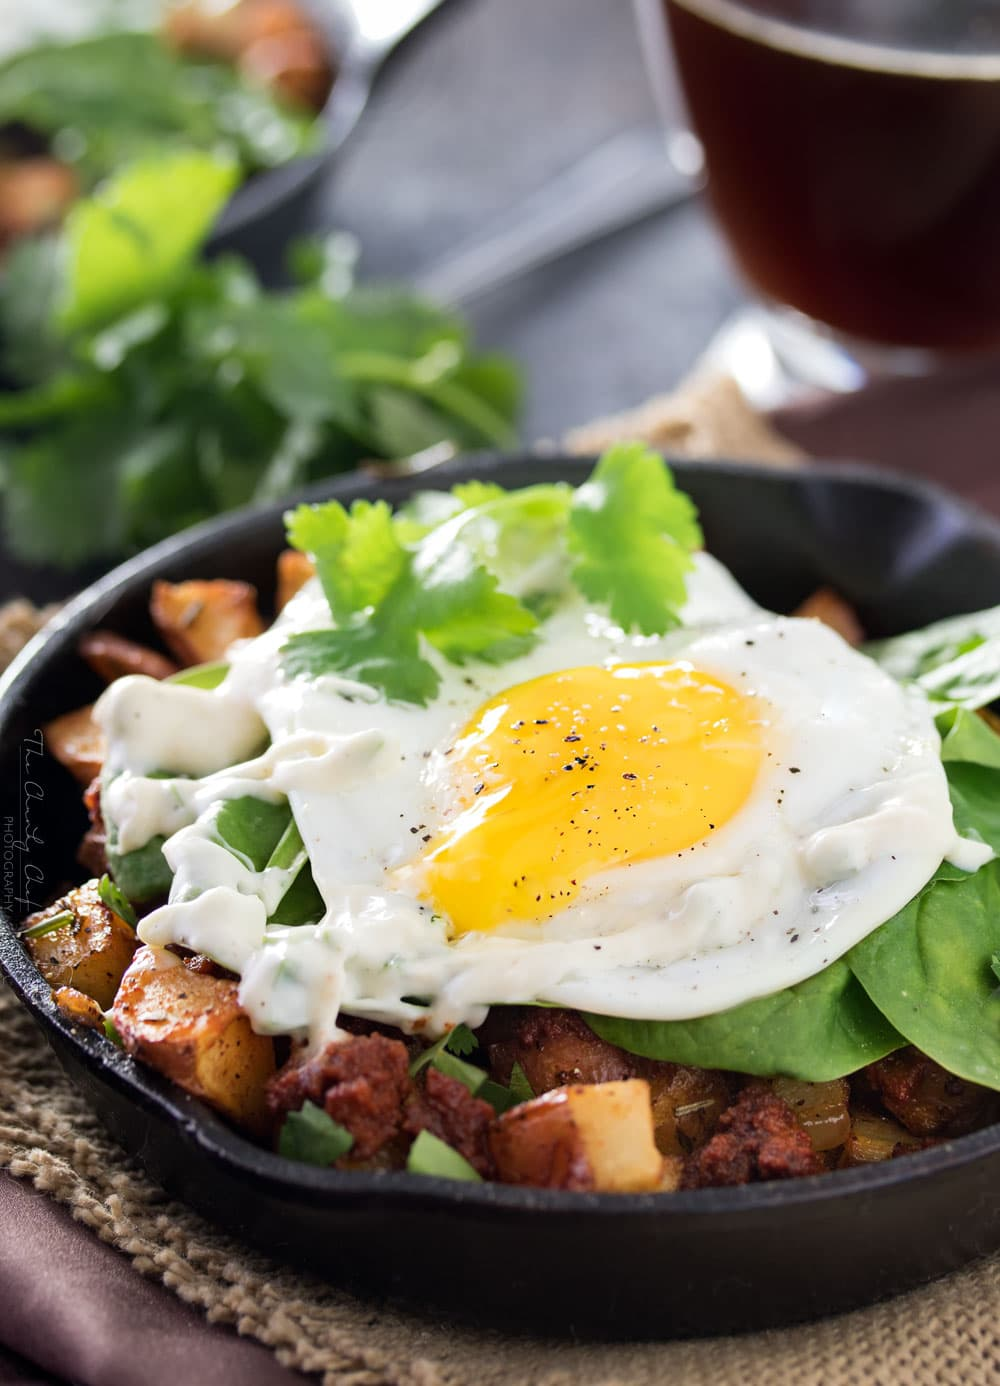 Chorizo Potato Hash with Jalapeno Aioli | Kick your breakfast up a notch with this delicious chorizo potato hash, topped with a sunny side up egg and drizzled with a homemade jalapeno aioli! |http://thechunkychef.com